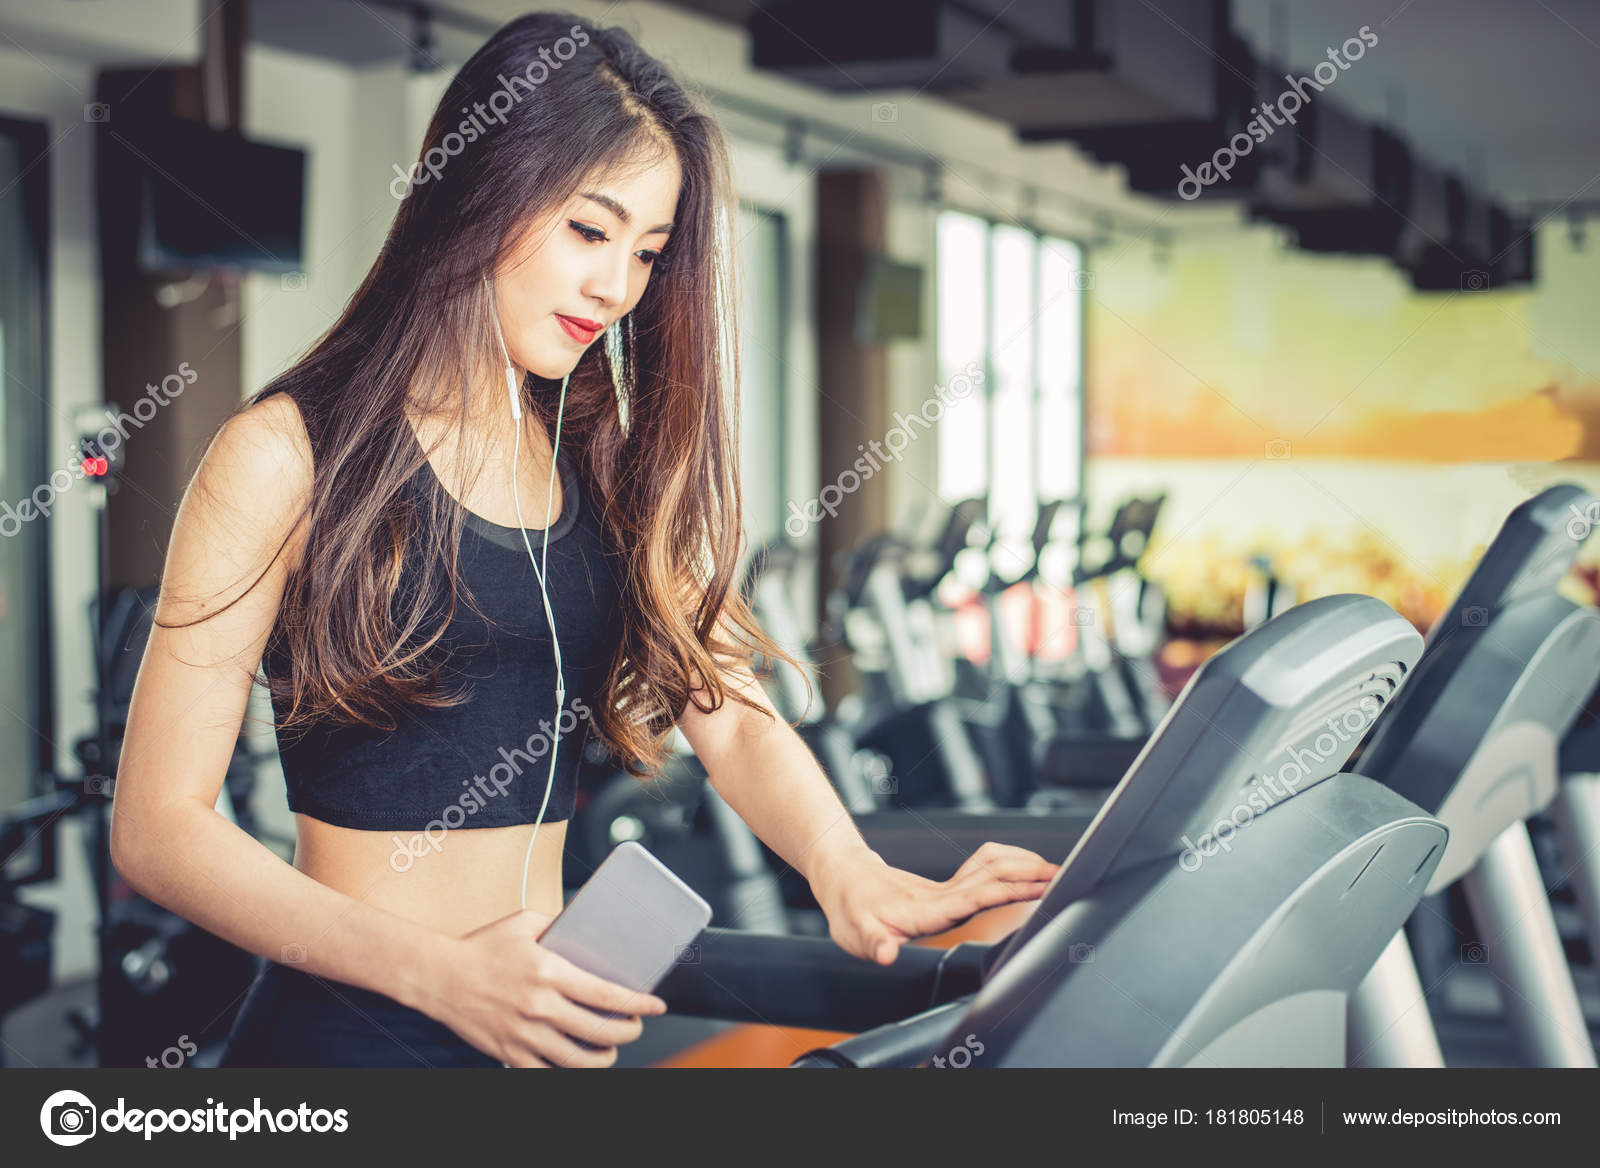 b2a47bb959d Asian woman using smart phone when workout or strength training at fitness  gym on treadmill.